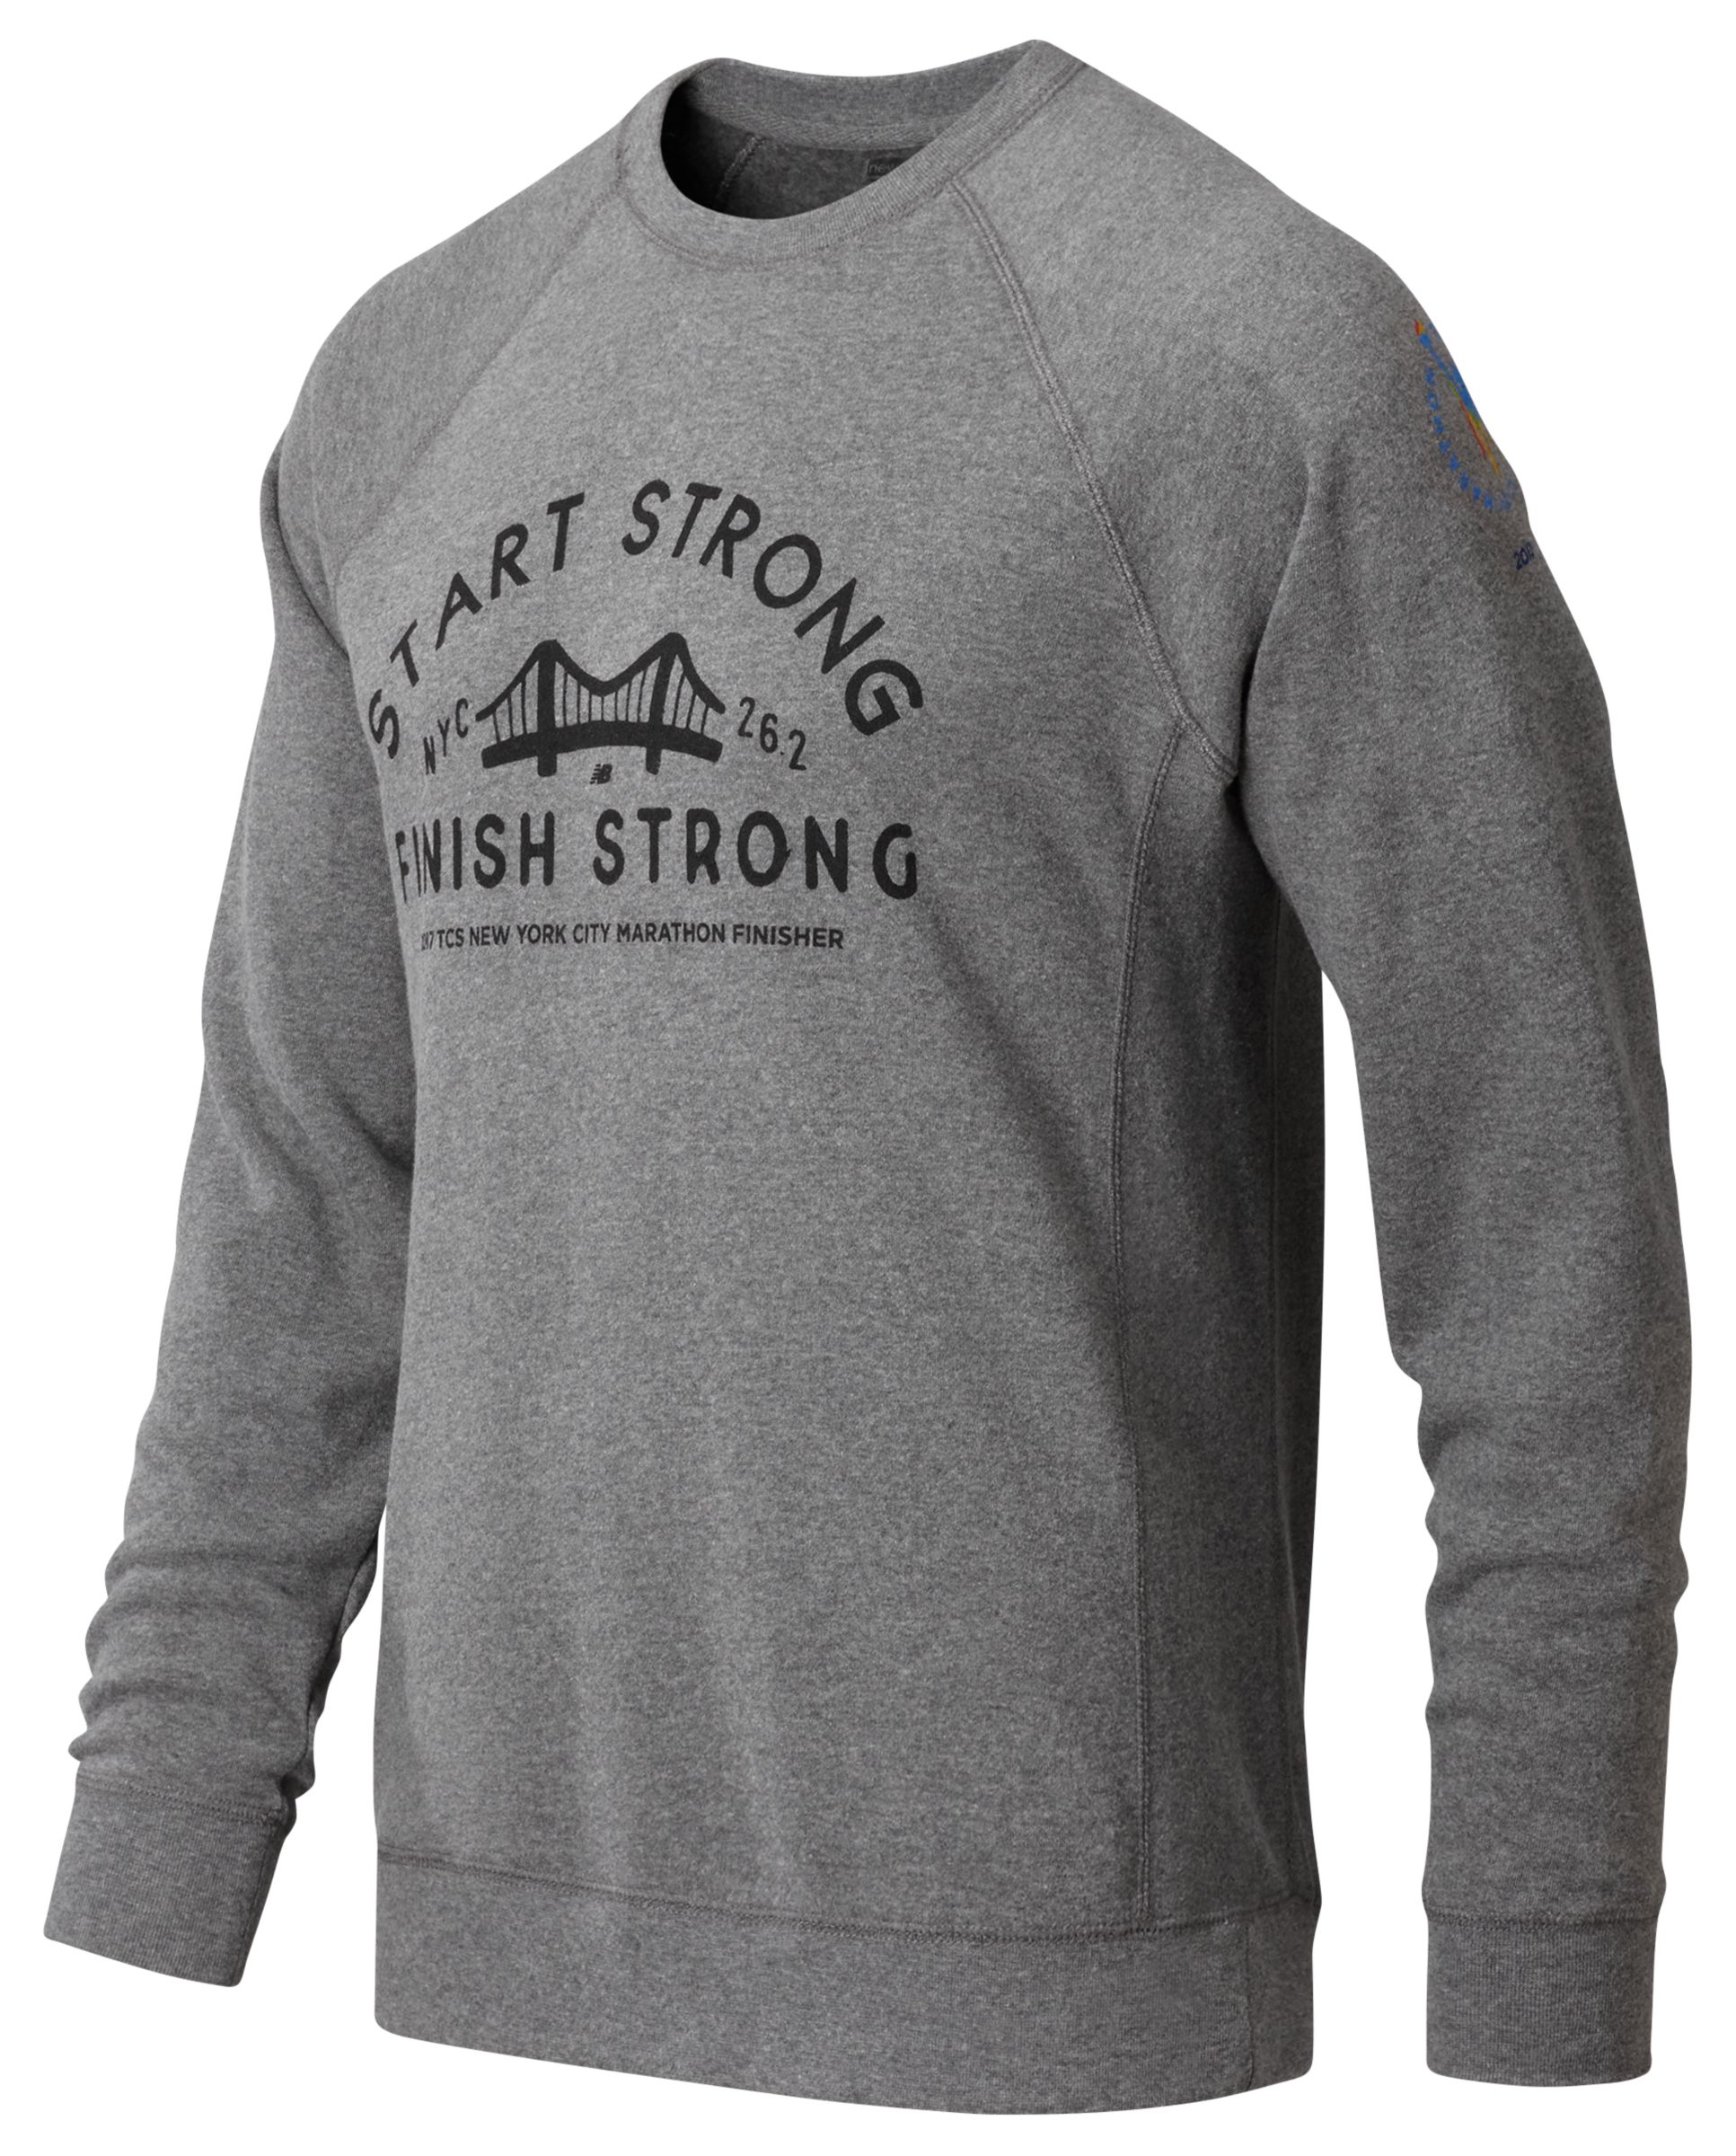 Men's NYC Marathon Finish Strong Long Sleeve